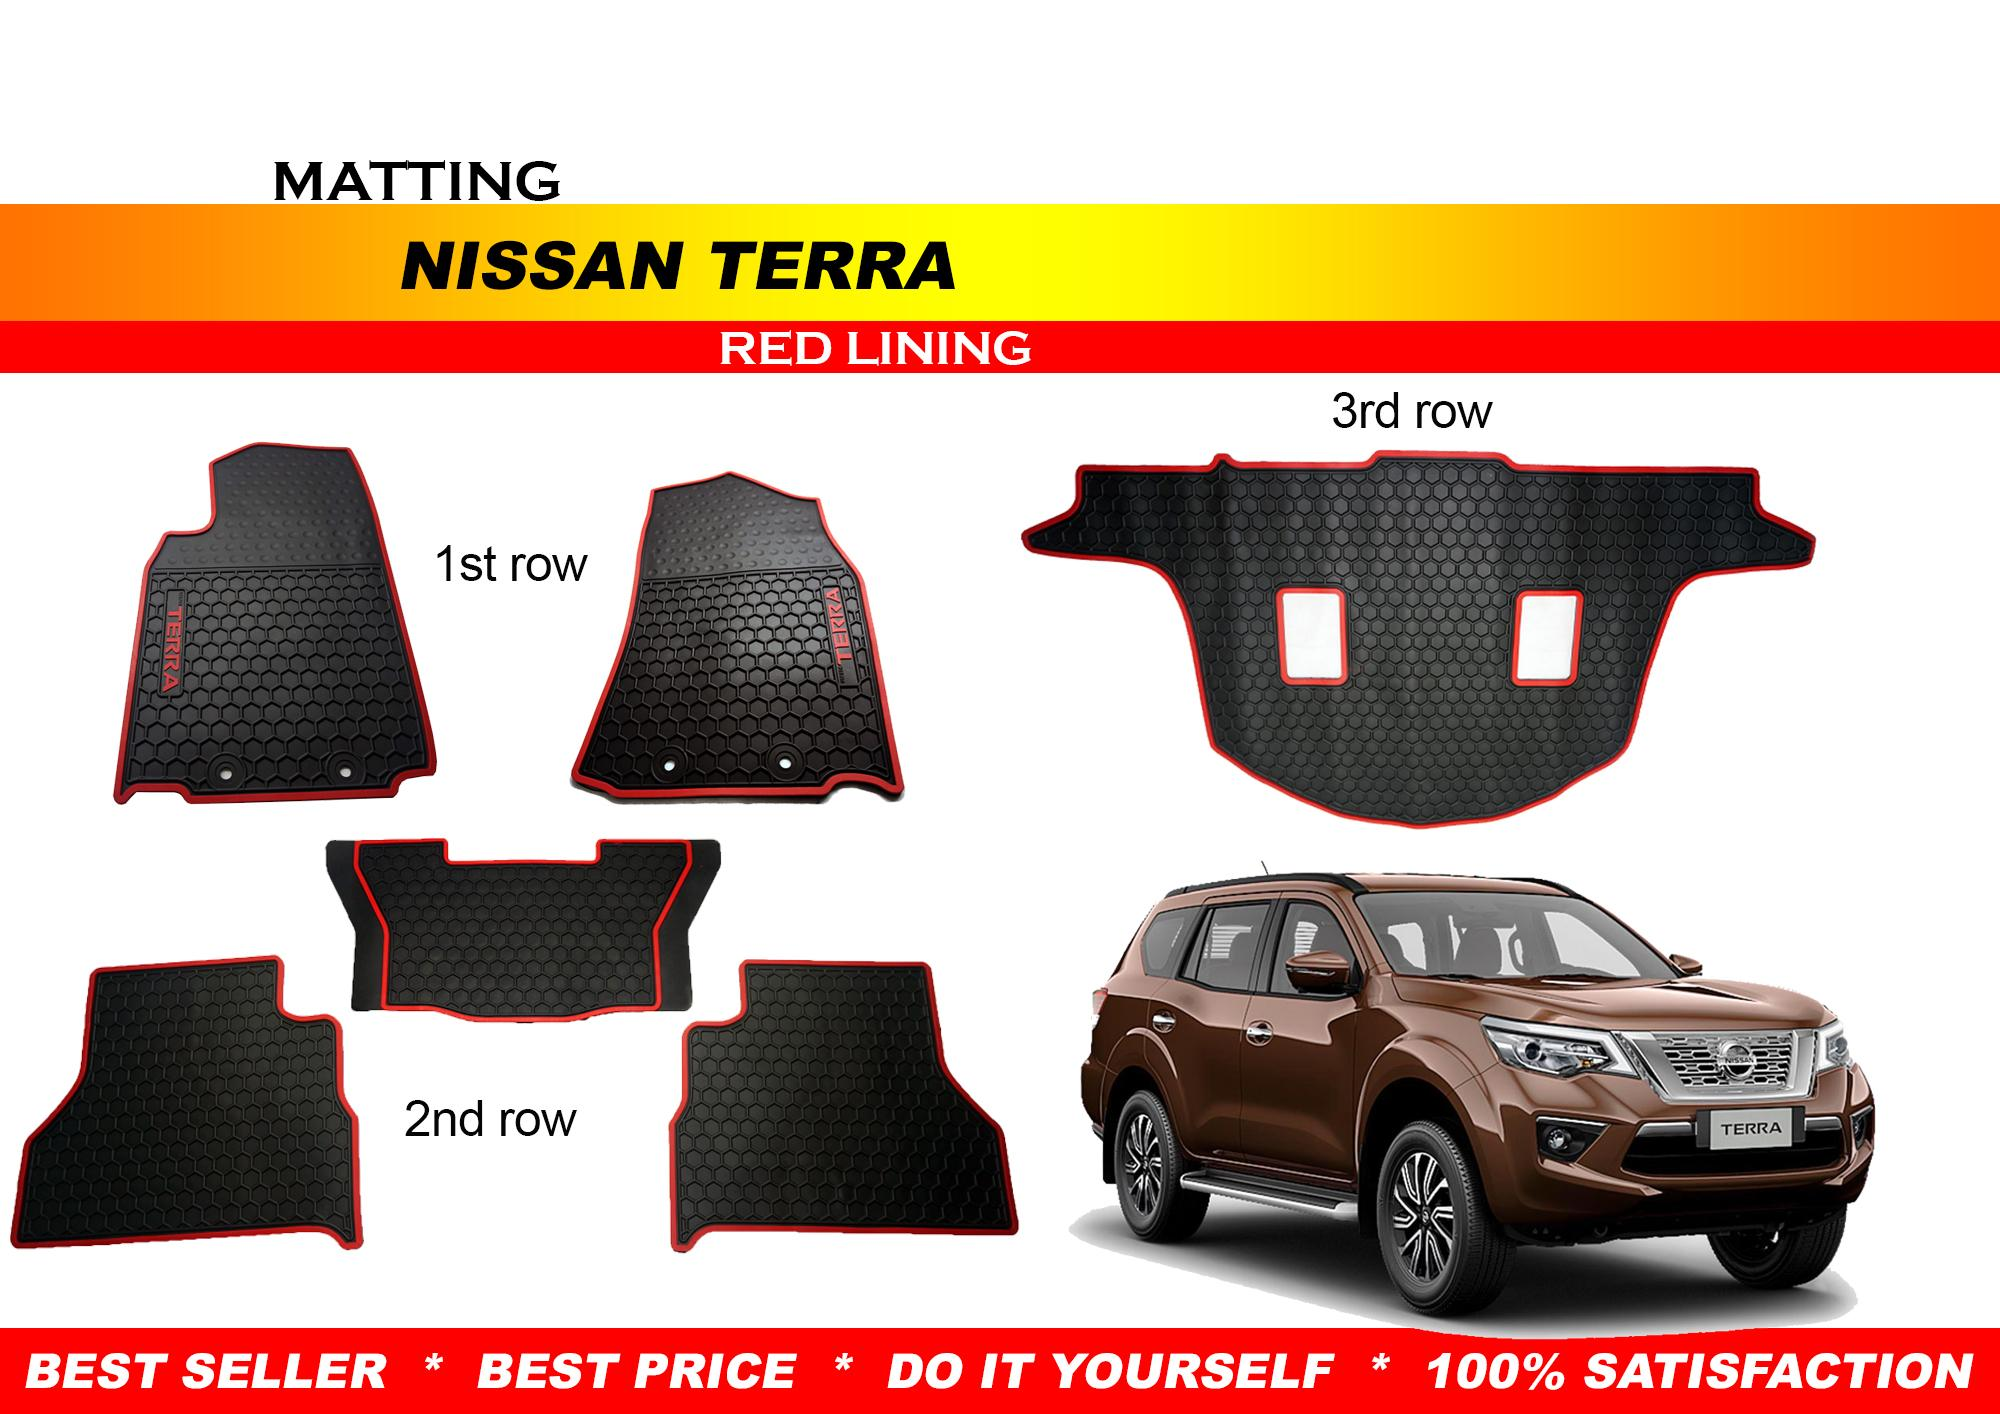 RUBBER MATTING FOR NISSAN TERRA 2018 RED LINING